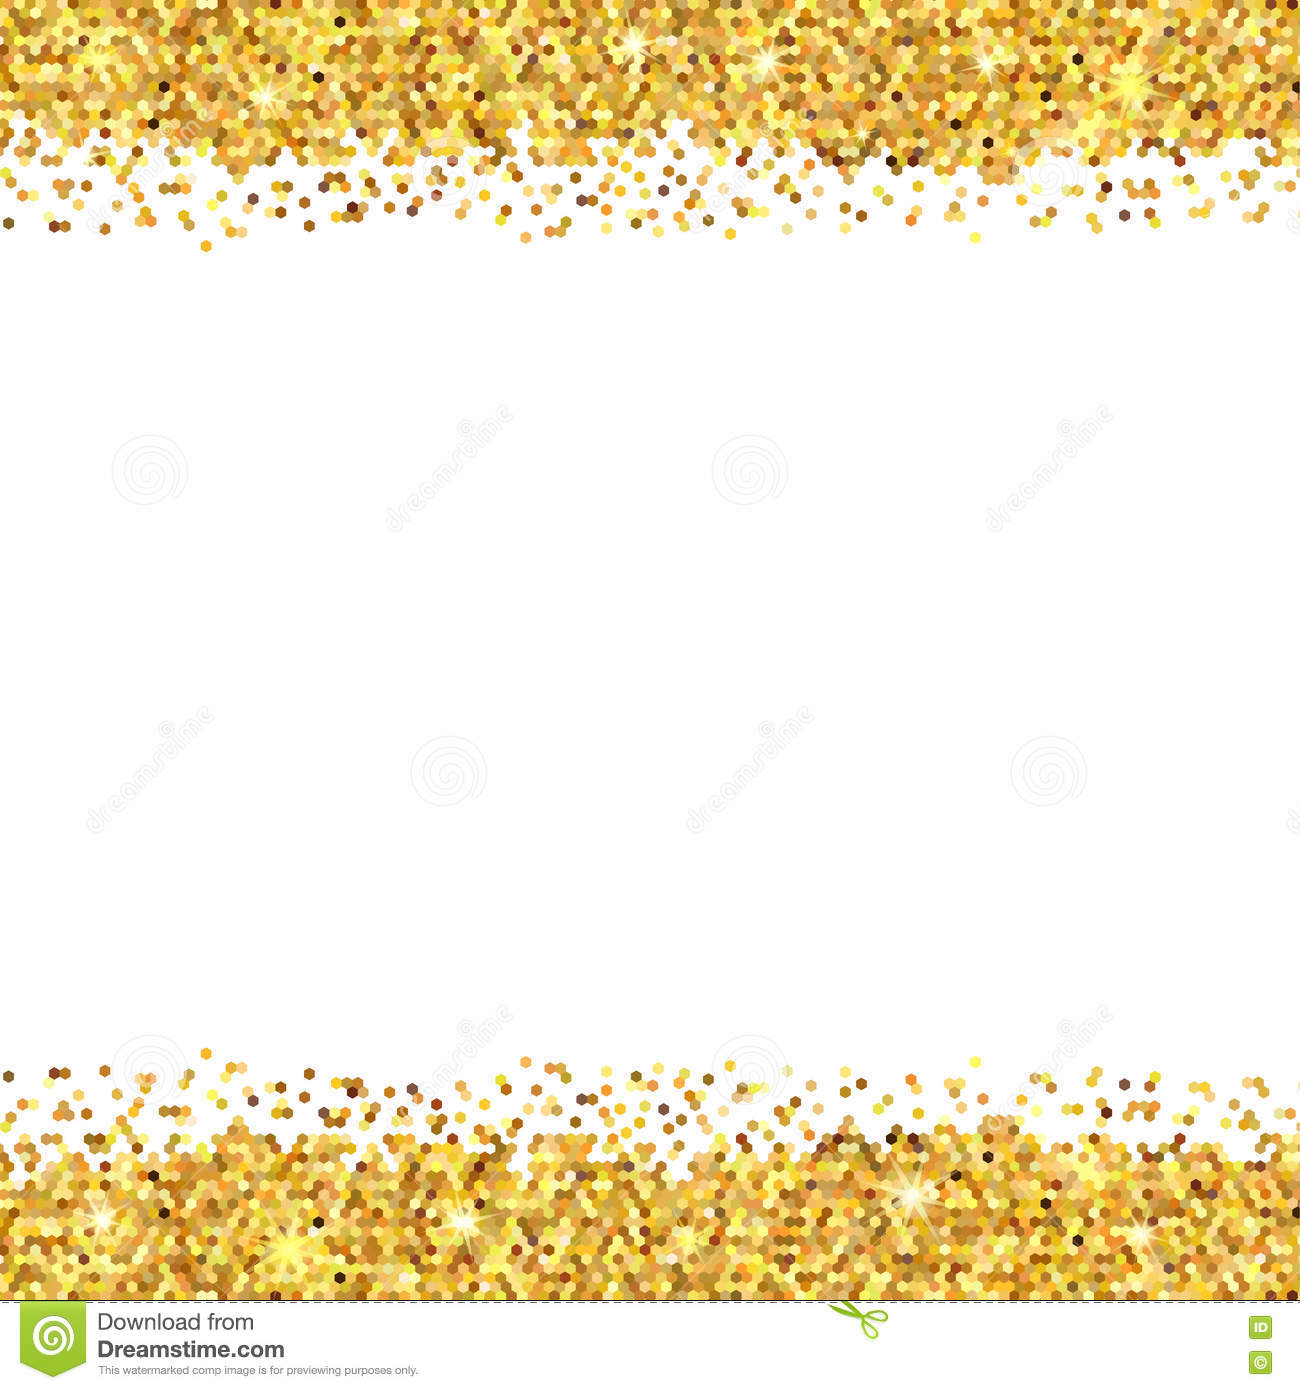 Wallpaper for walls silver glitter glitter and silver on pinterest - Silver Shimmer Background Dark Brown Hairs